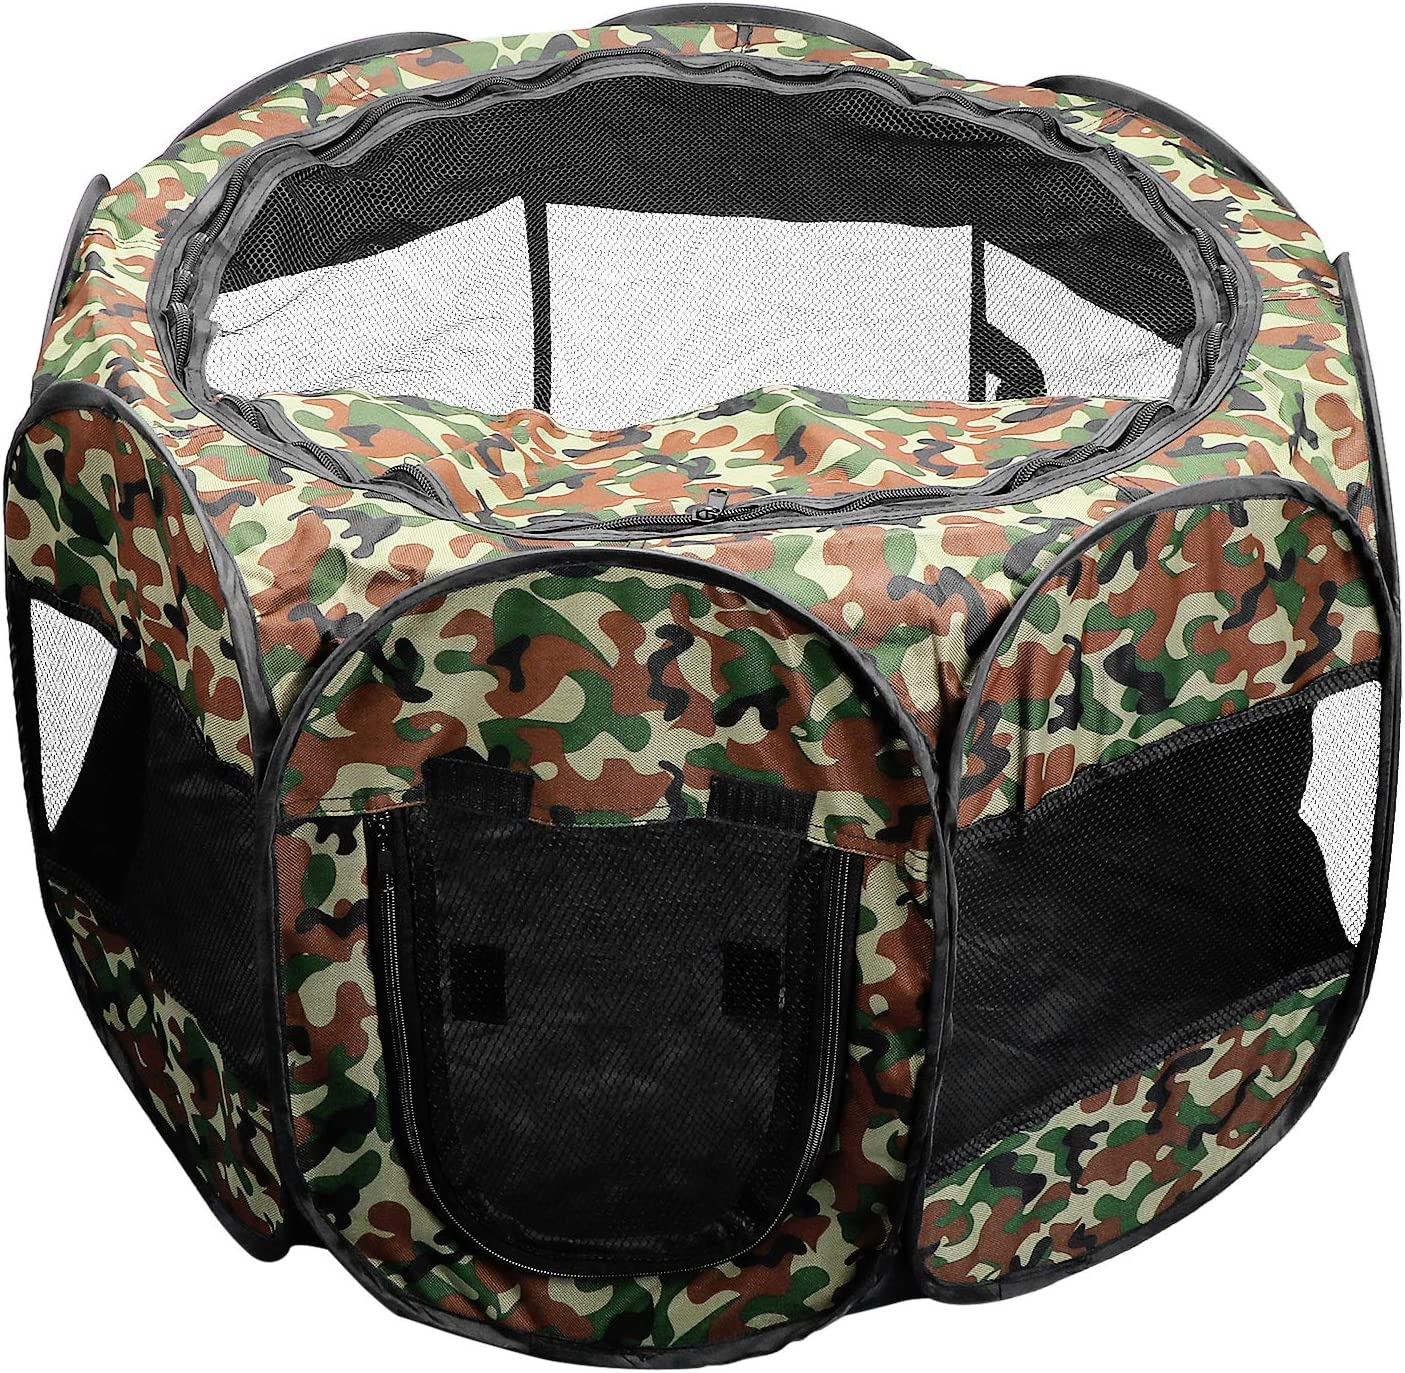 KEESIN Foldable Pet Tent 8-Panel Mesh House Puppy Playpen Kennel for Dog Cat Rabbit 73 * 73 * 43cm, Camouflage Green